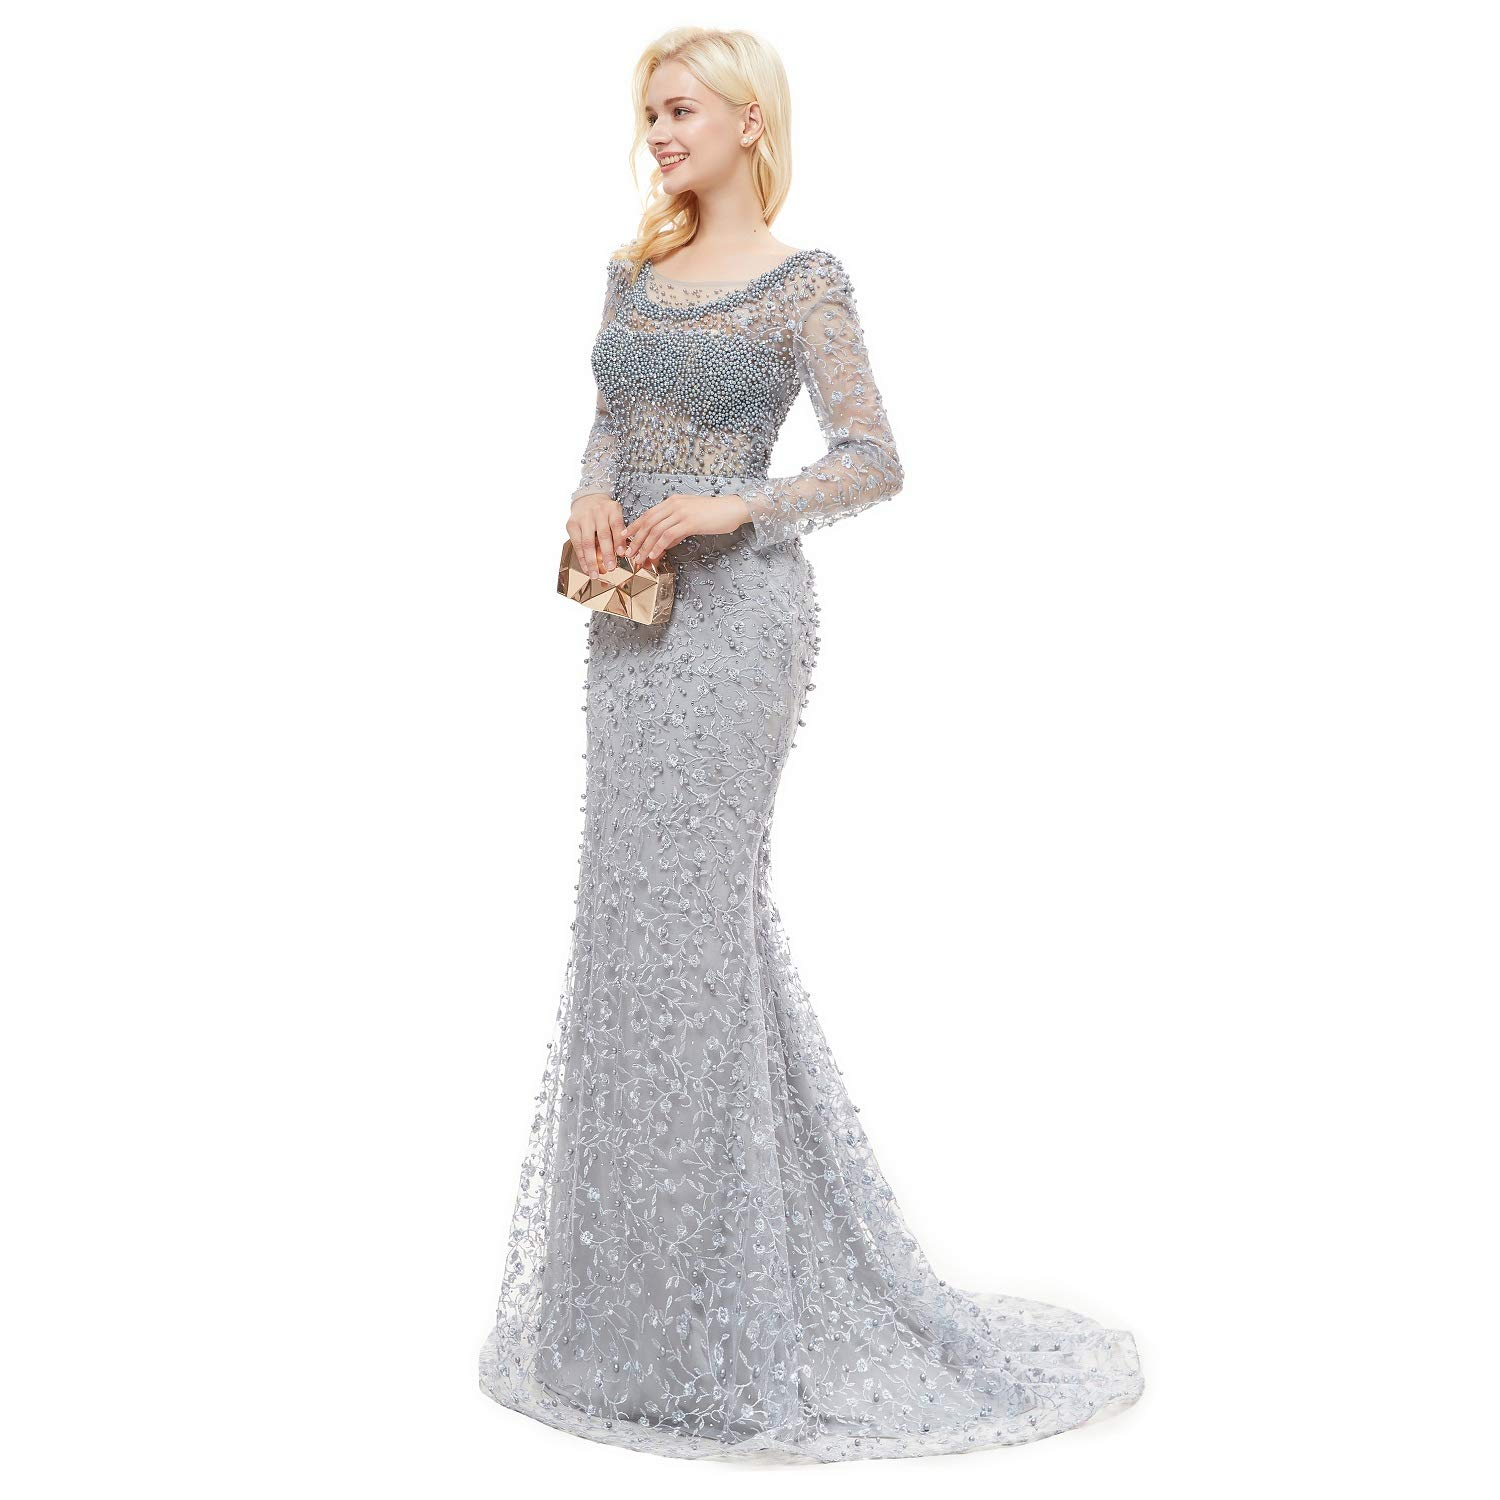 ba7fdf3e53ee Amazon.com  Leyidress Womne s Pink Pearl Lace Crystal Mermaid Evening  Dresses Party Long Sleeve Prom Dresses Bridal Pageant Gown US 2-16  Clothing